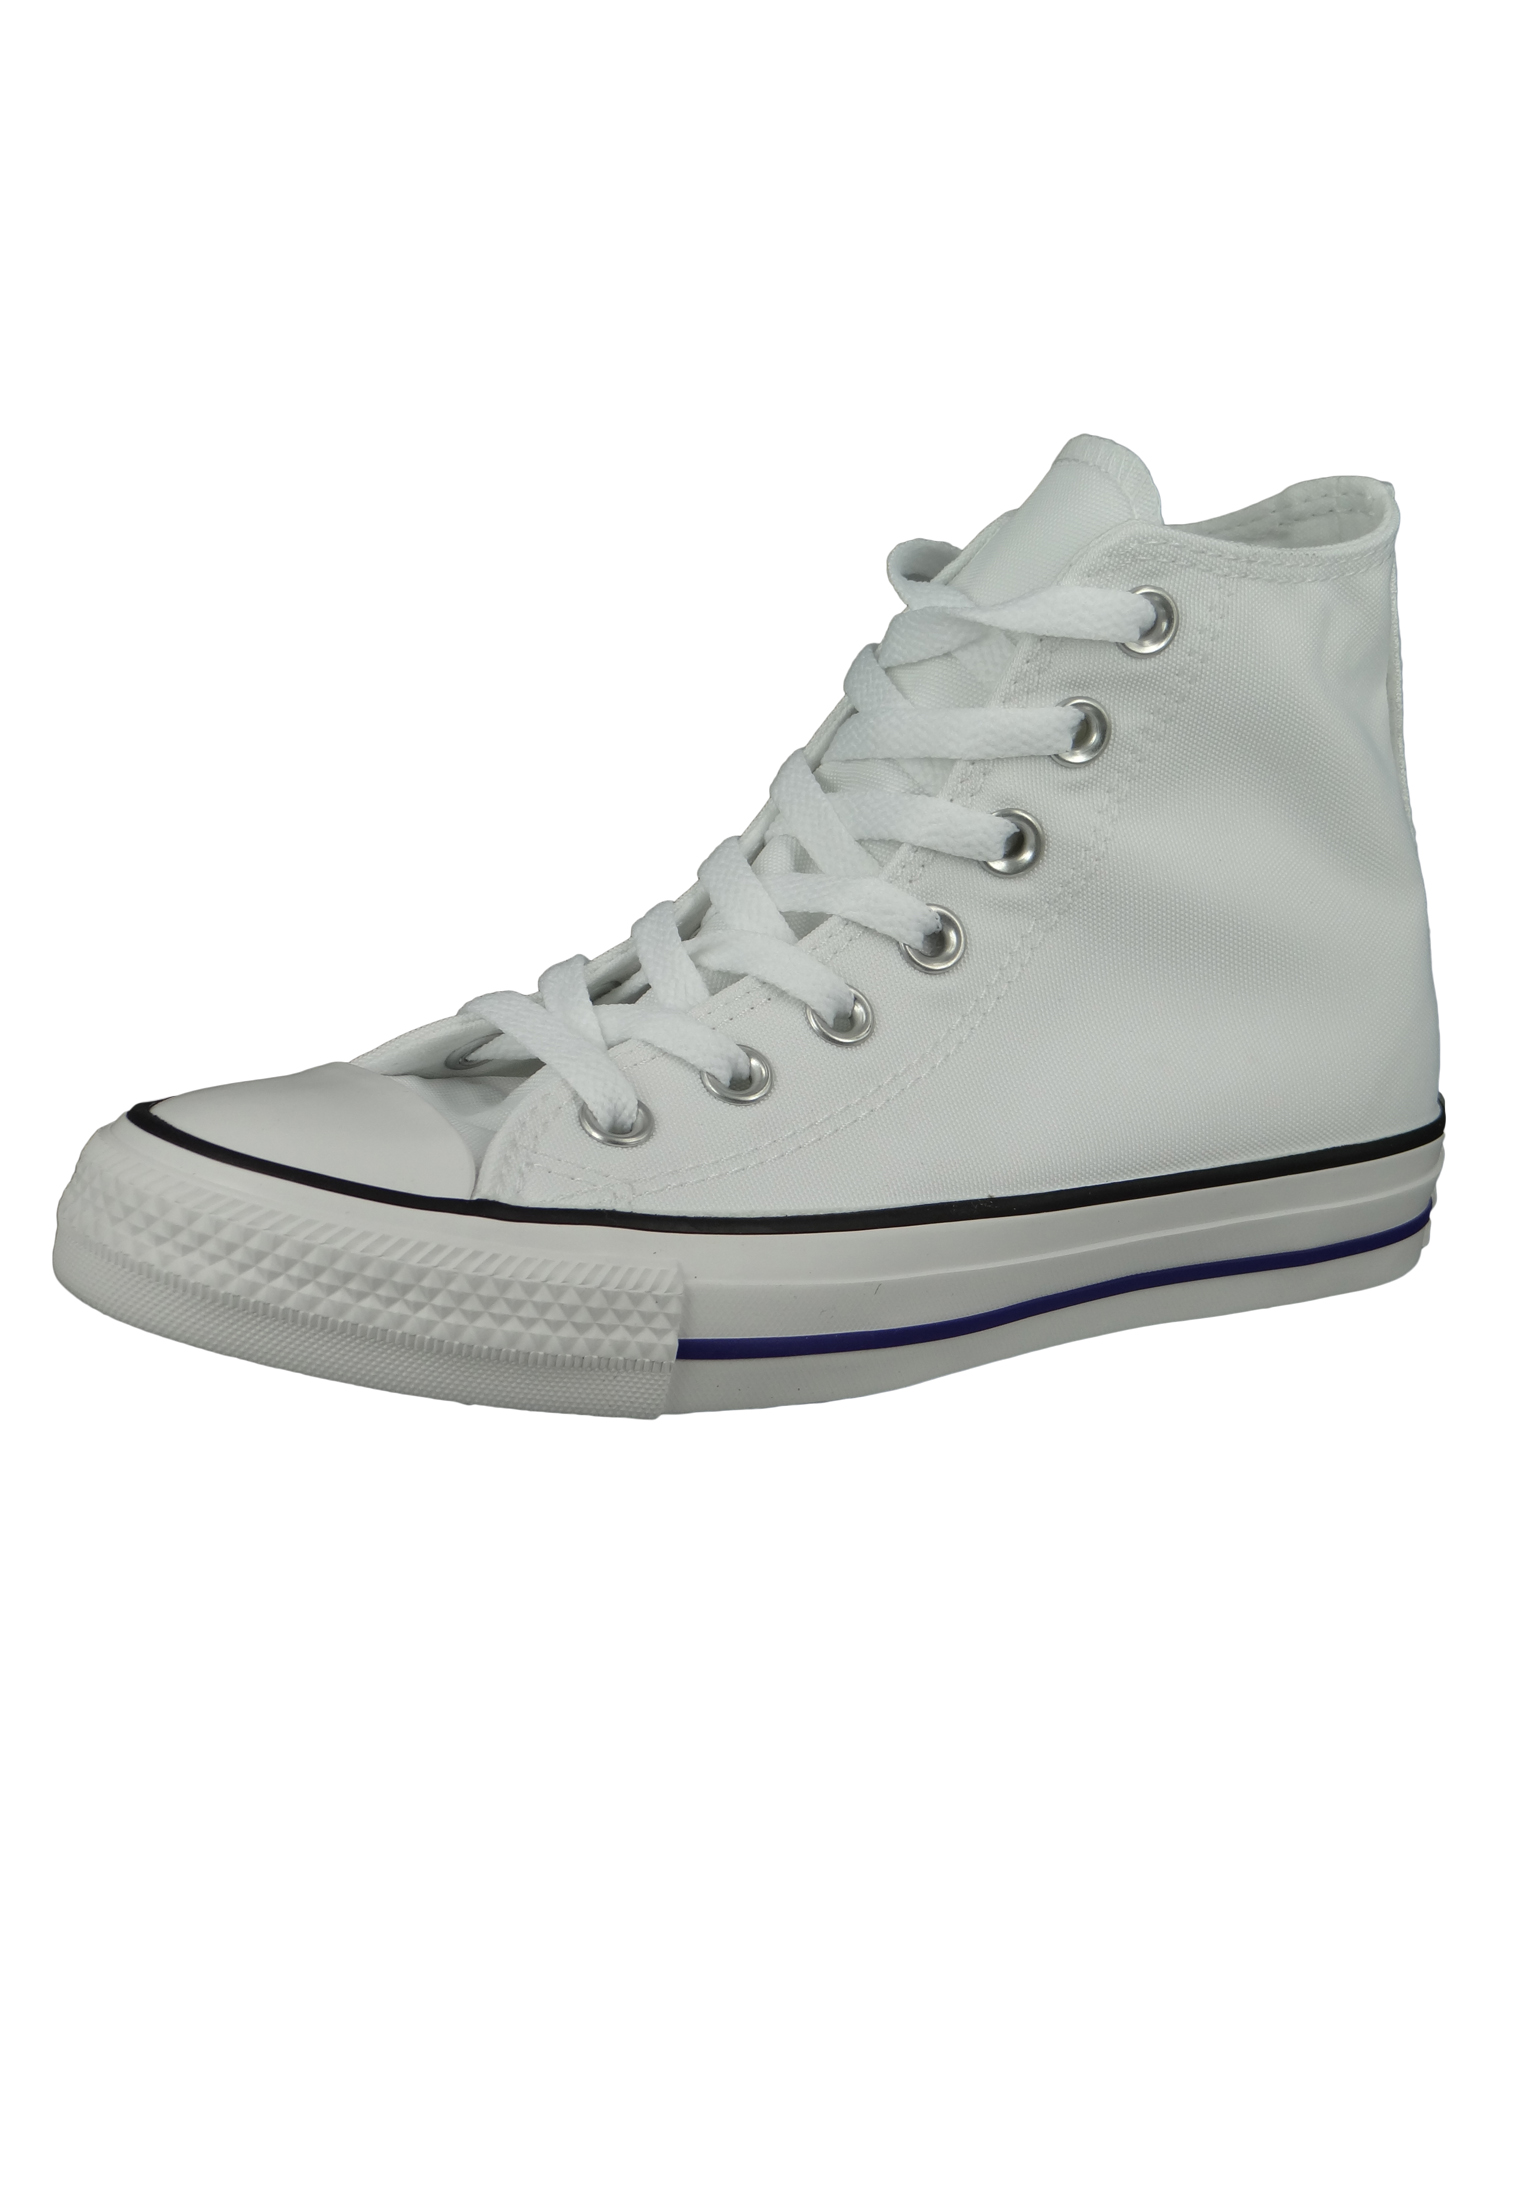 quality design a9704 04106 Converse Chucks Weiss 164411C Chuck Taylor All Star - White Court Purple  White